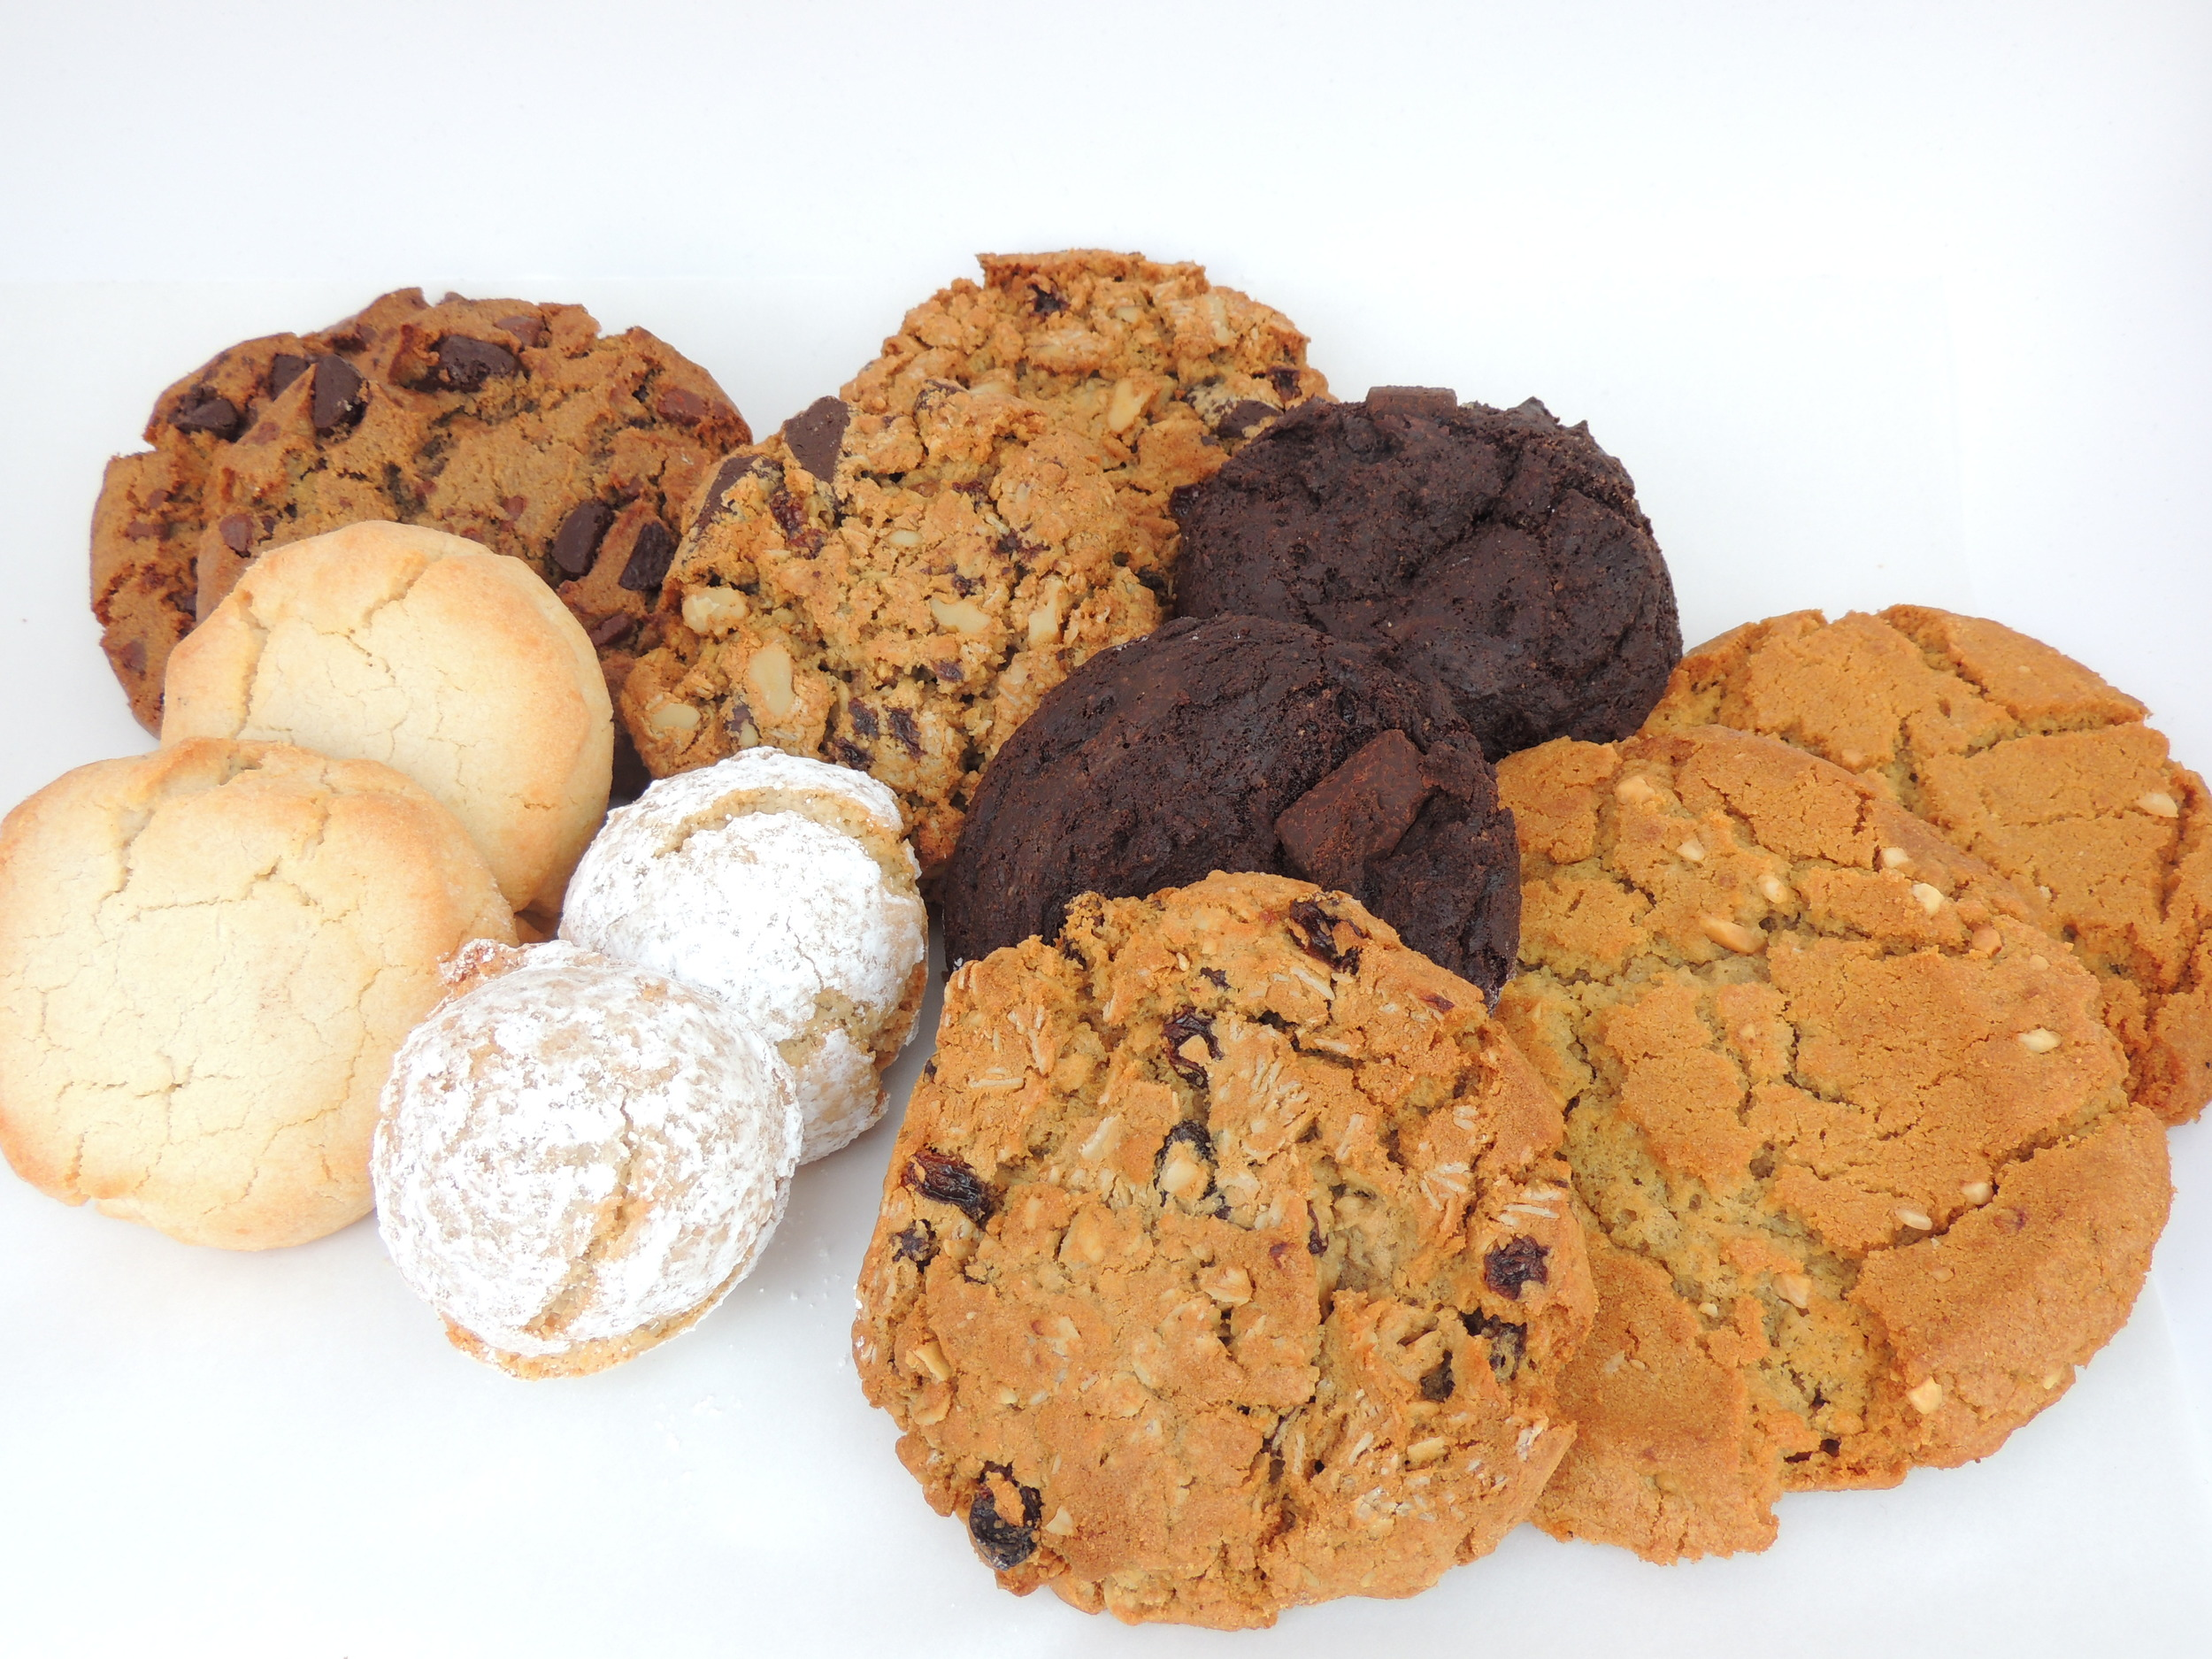 From left to right: Chocolate chip, shortbread, cowgirl, ricciarelli, double chocolate mint, oatmeal raisin, and peanut butter.